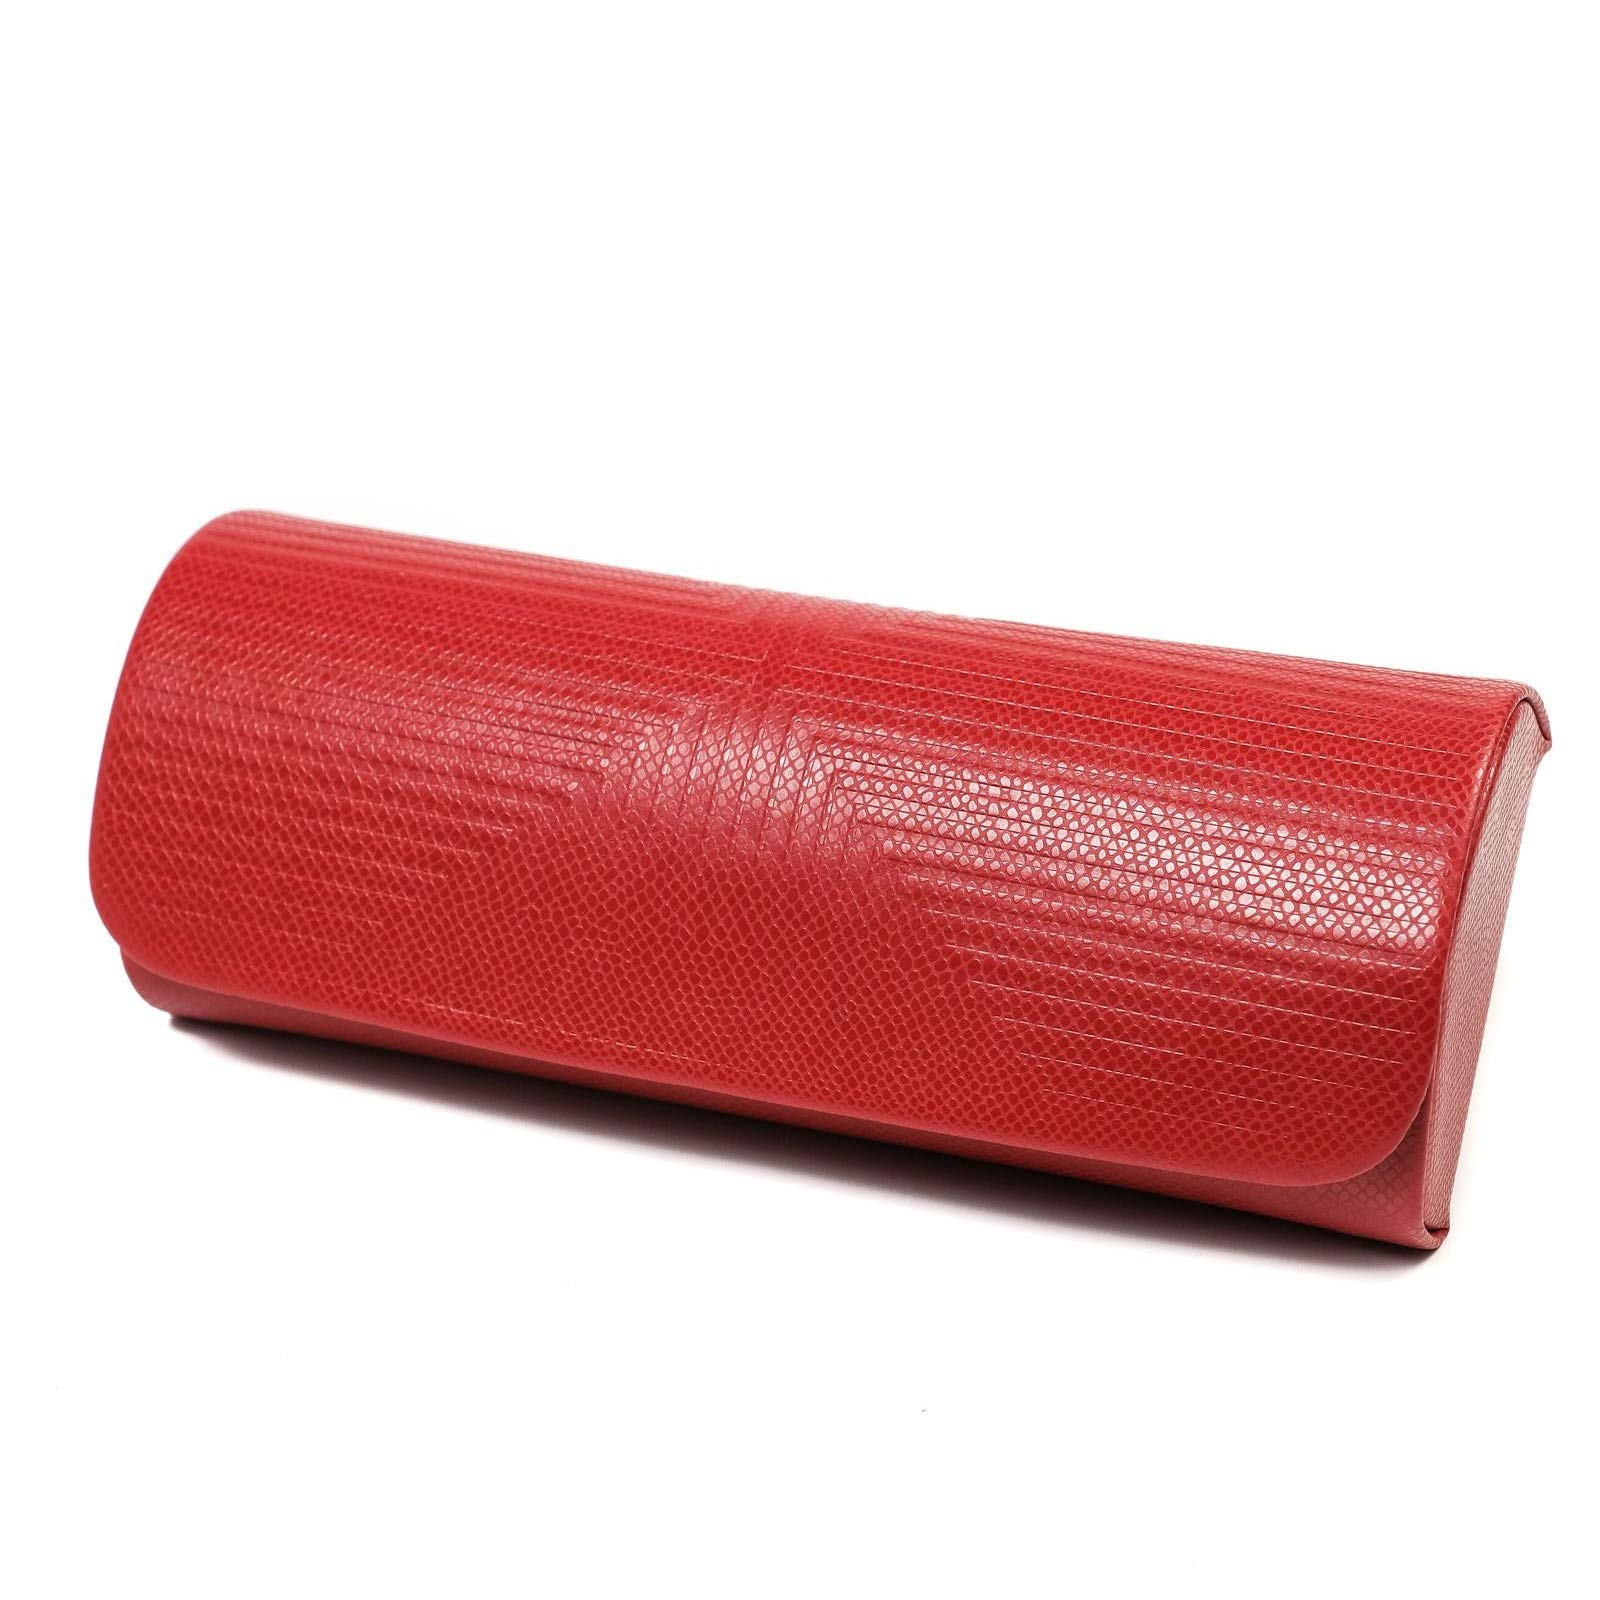 Handmade Russian Glasses case red, on a solid basis, covered with artificial leather by RuPost